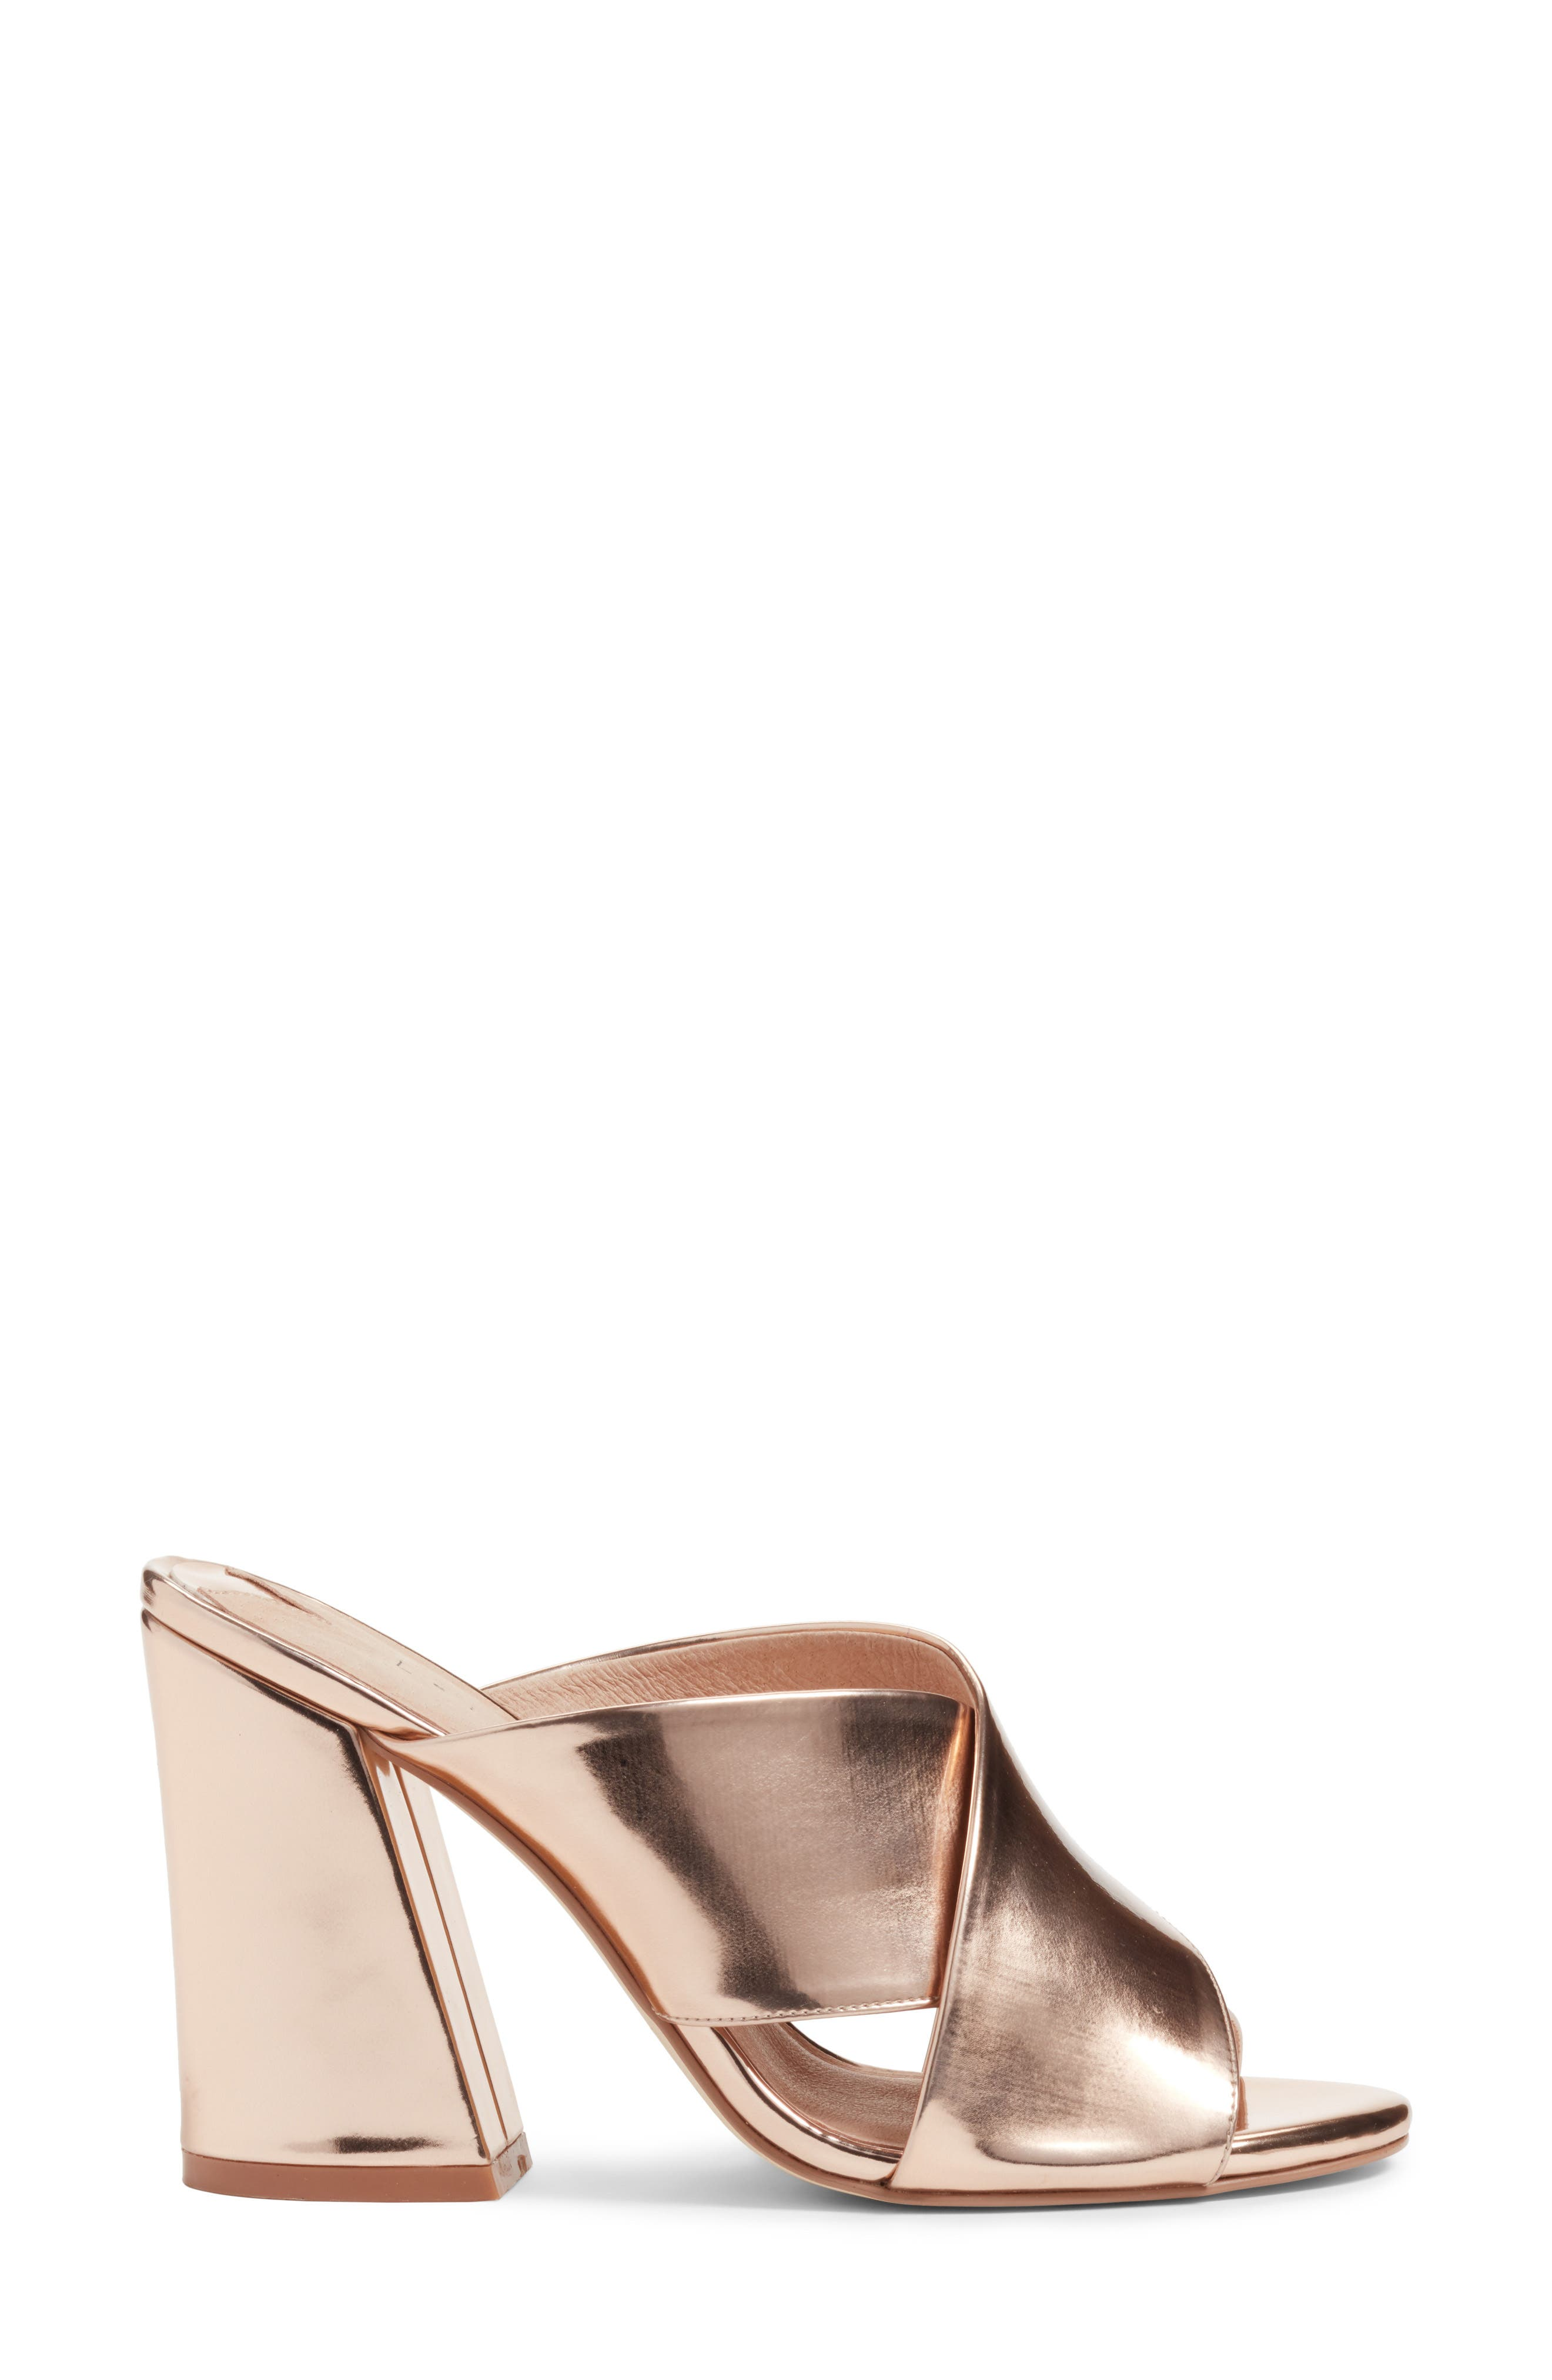 Cammie Block Heel Sandal,                             Alternate thumbnail 3, color,                             Rosegold Metallic Faux Leather